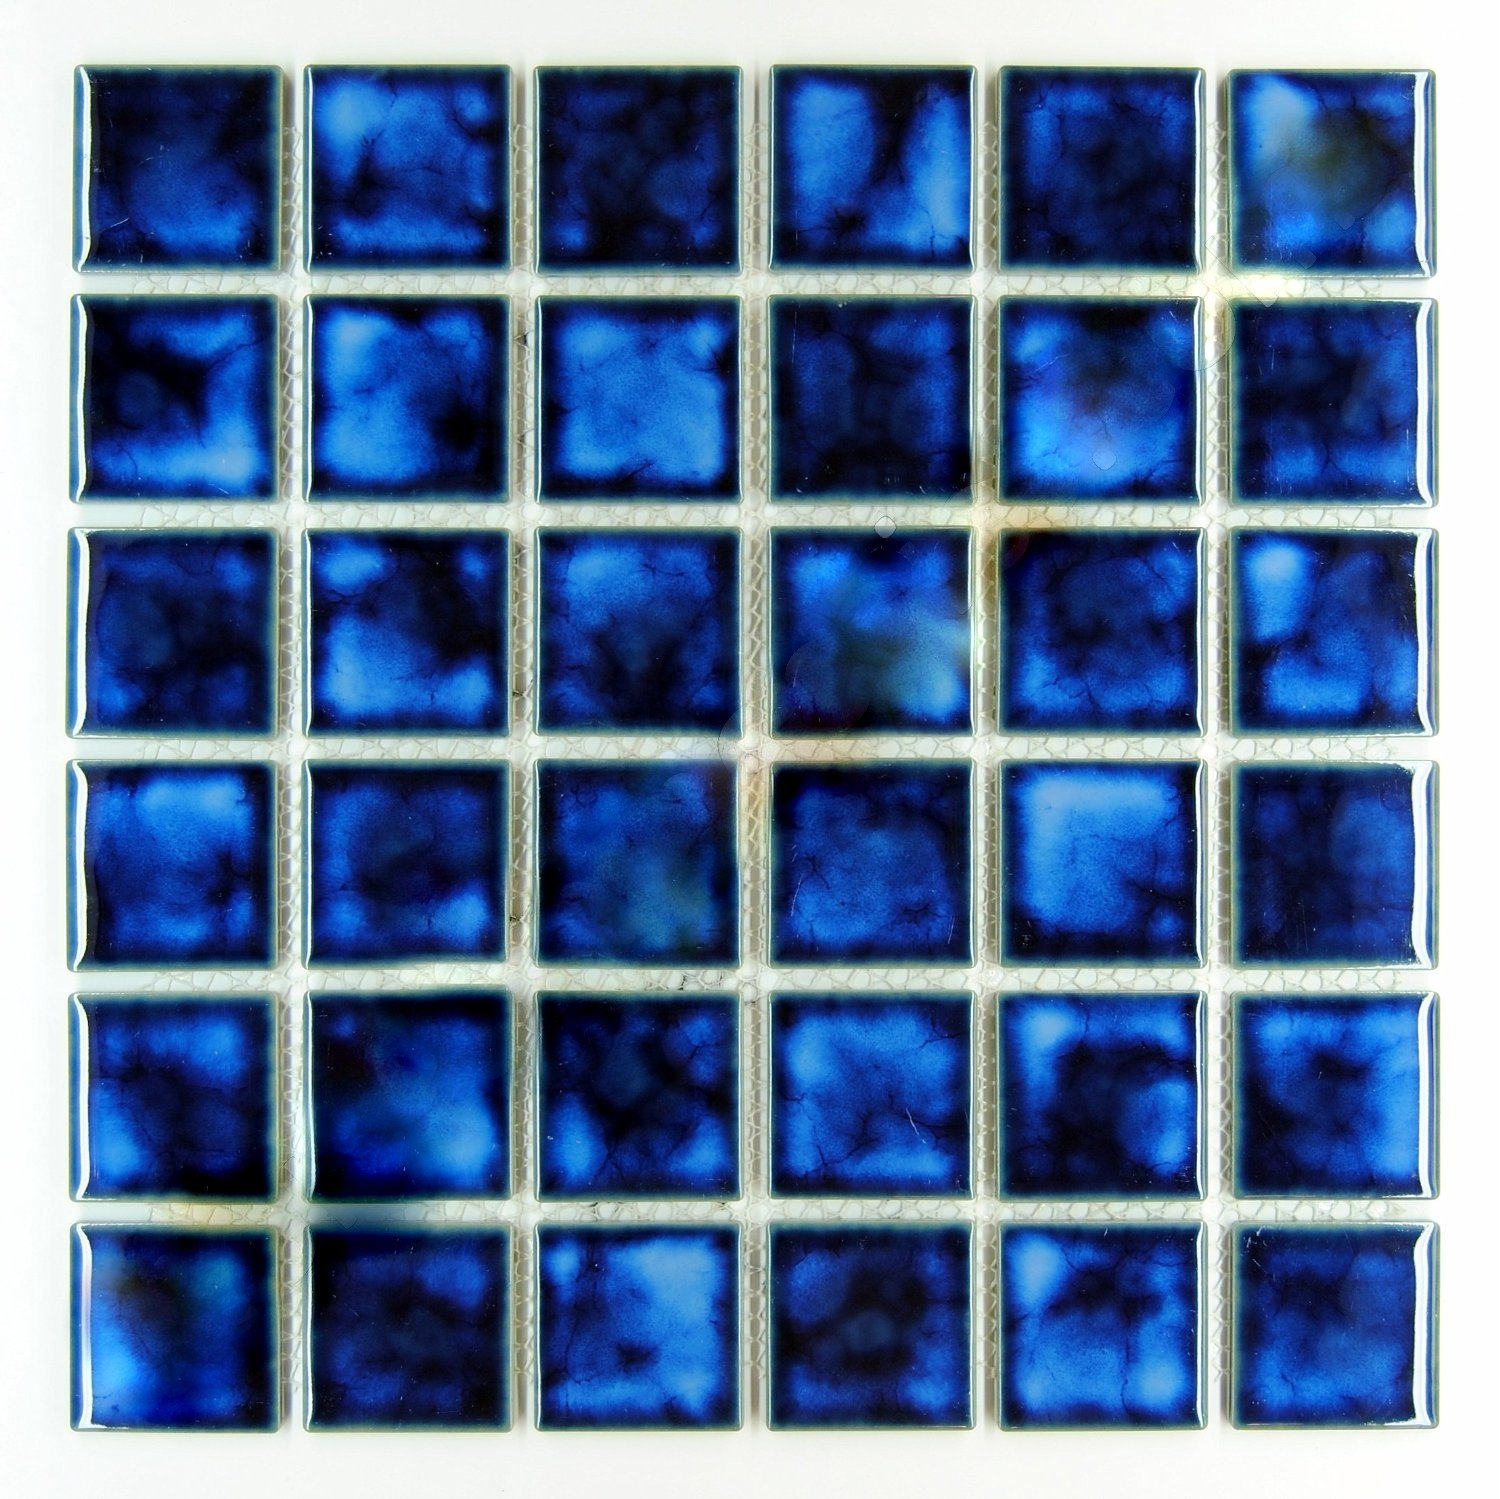 Square Tile Marble Blue Porcelain Mosaic Shiny Look 2x2 Inch (Box of ...